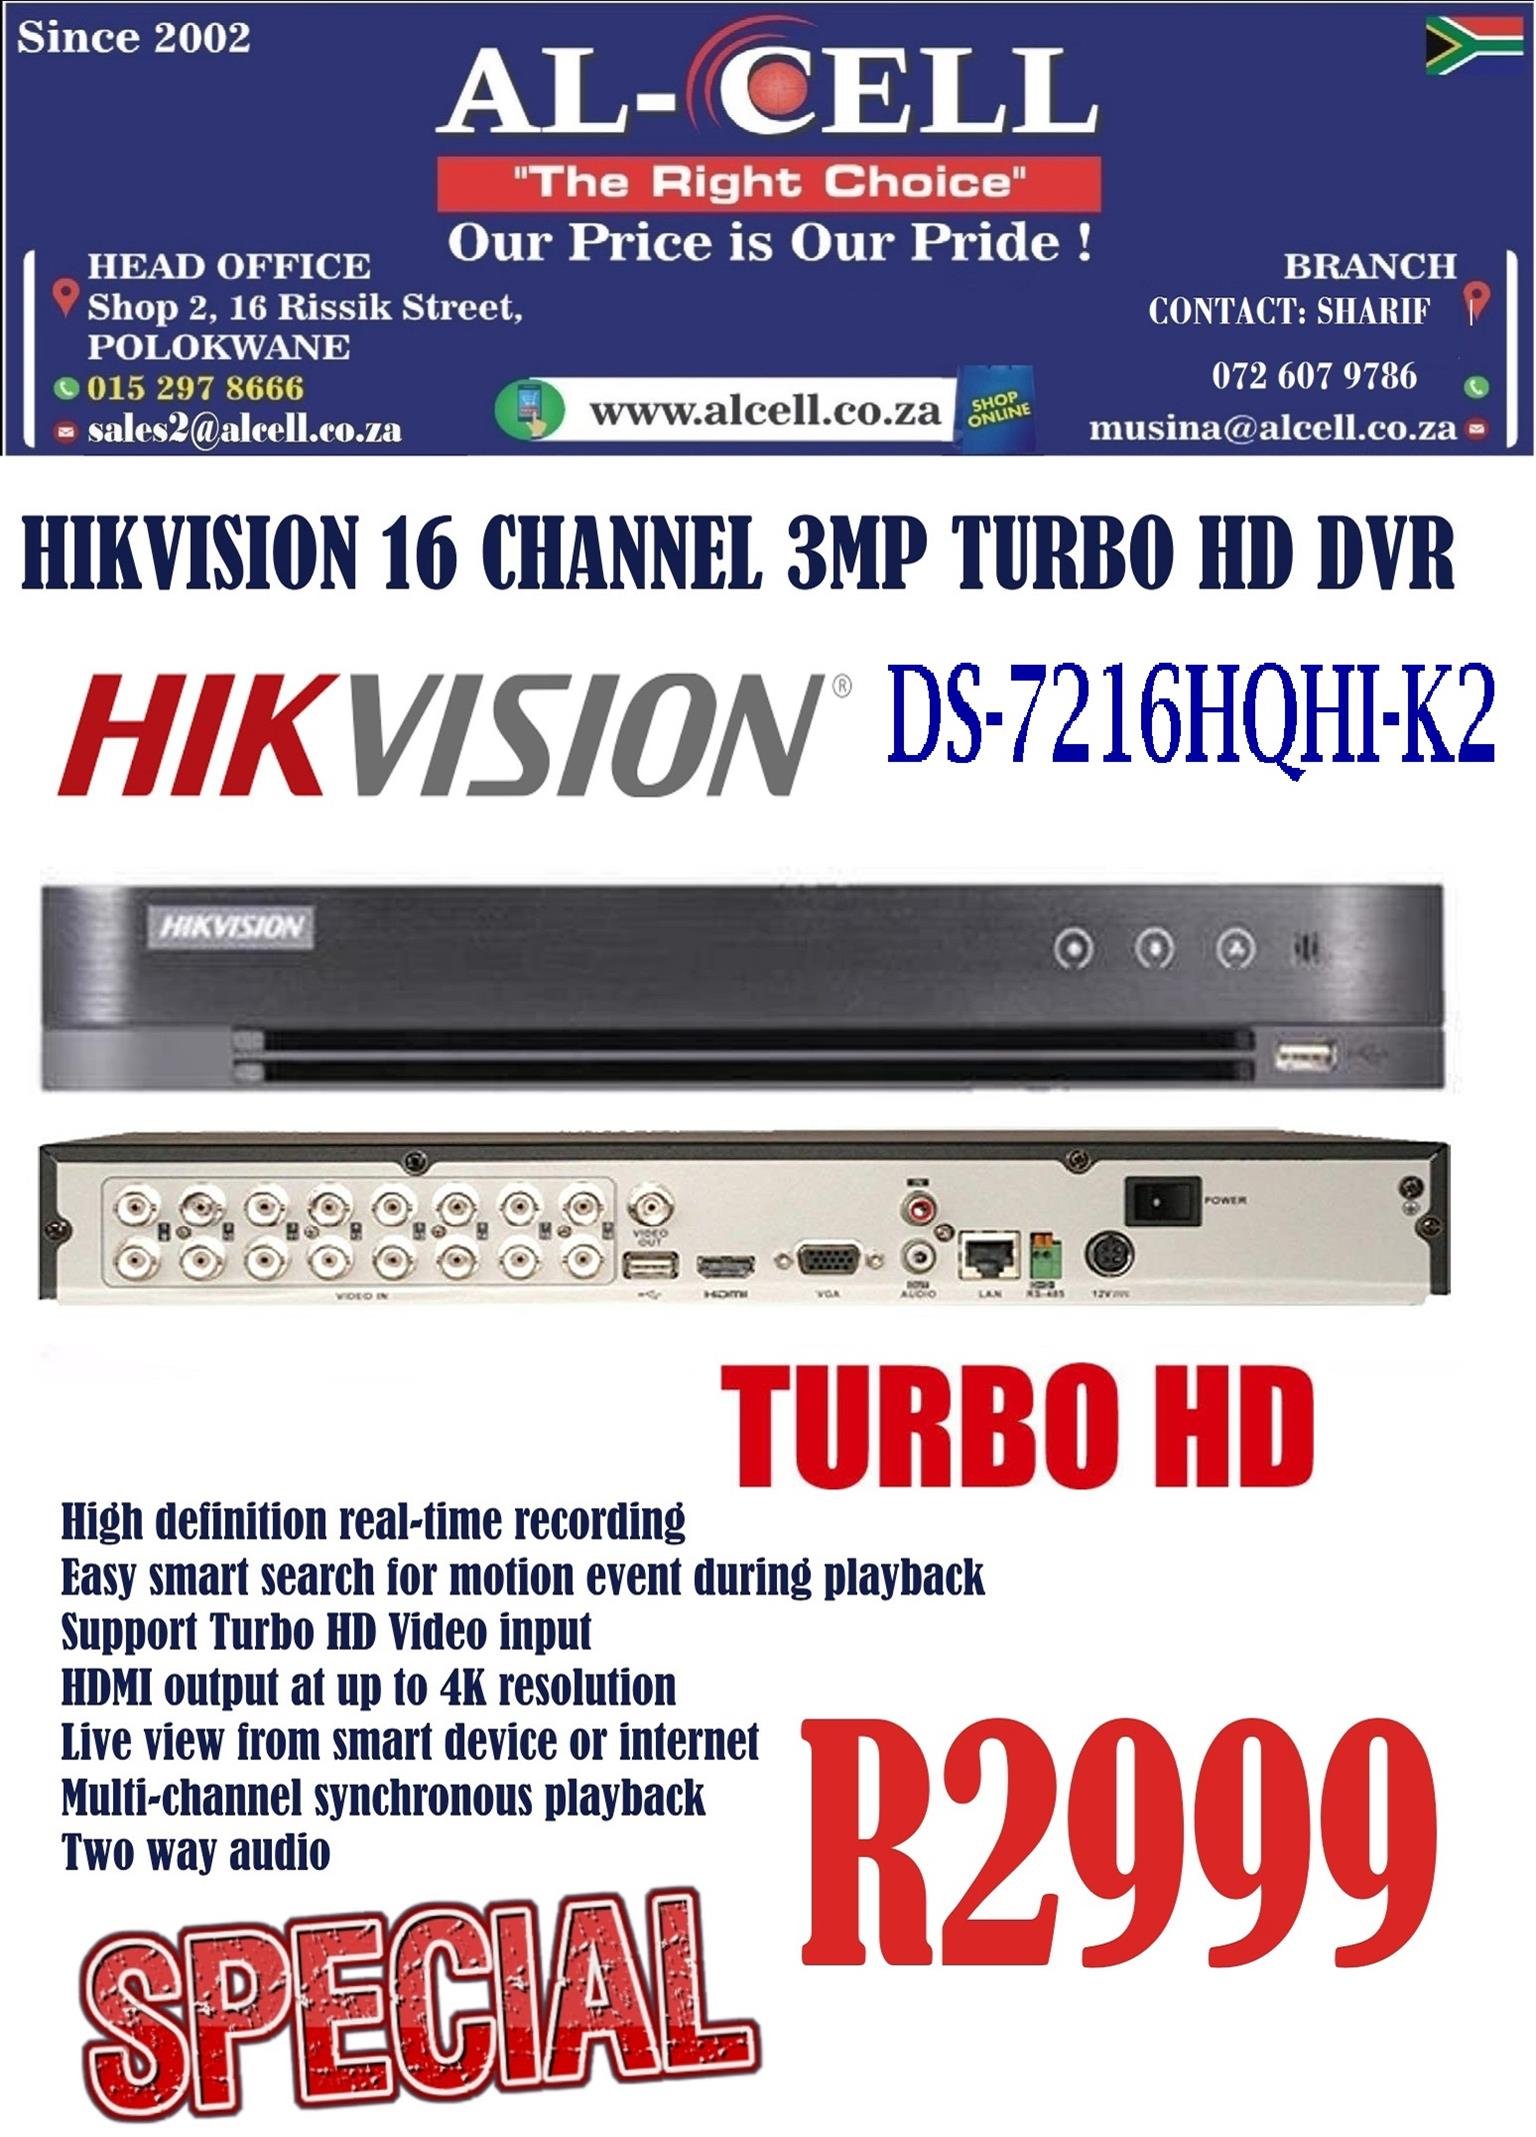 Hikvision 16 Channel DS-7216HQHI-K2 Turbo HD 3MP DVR